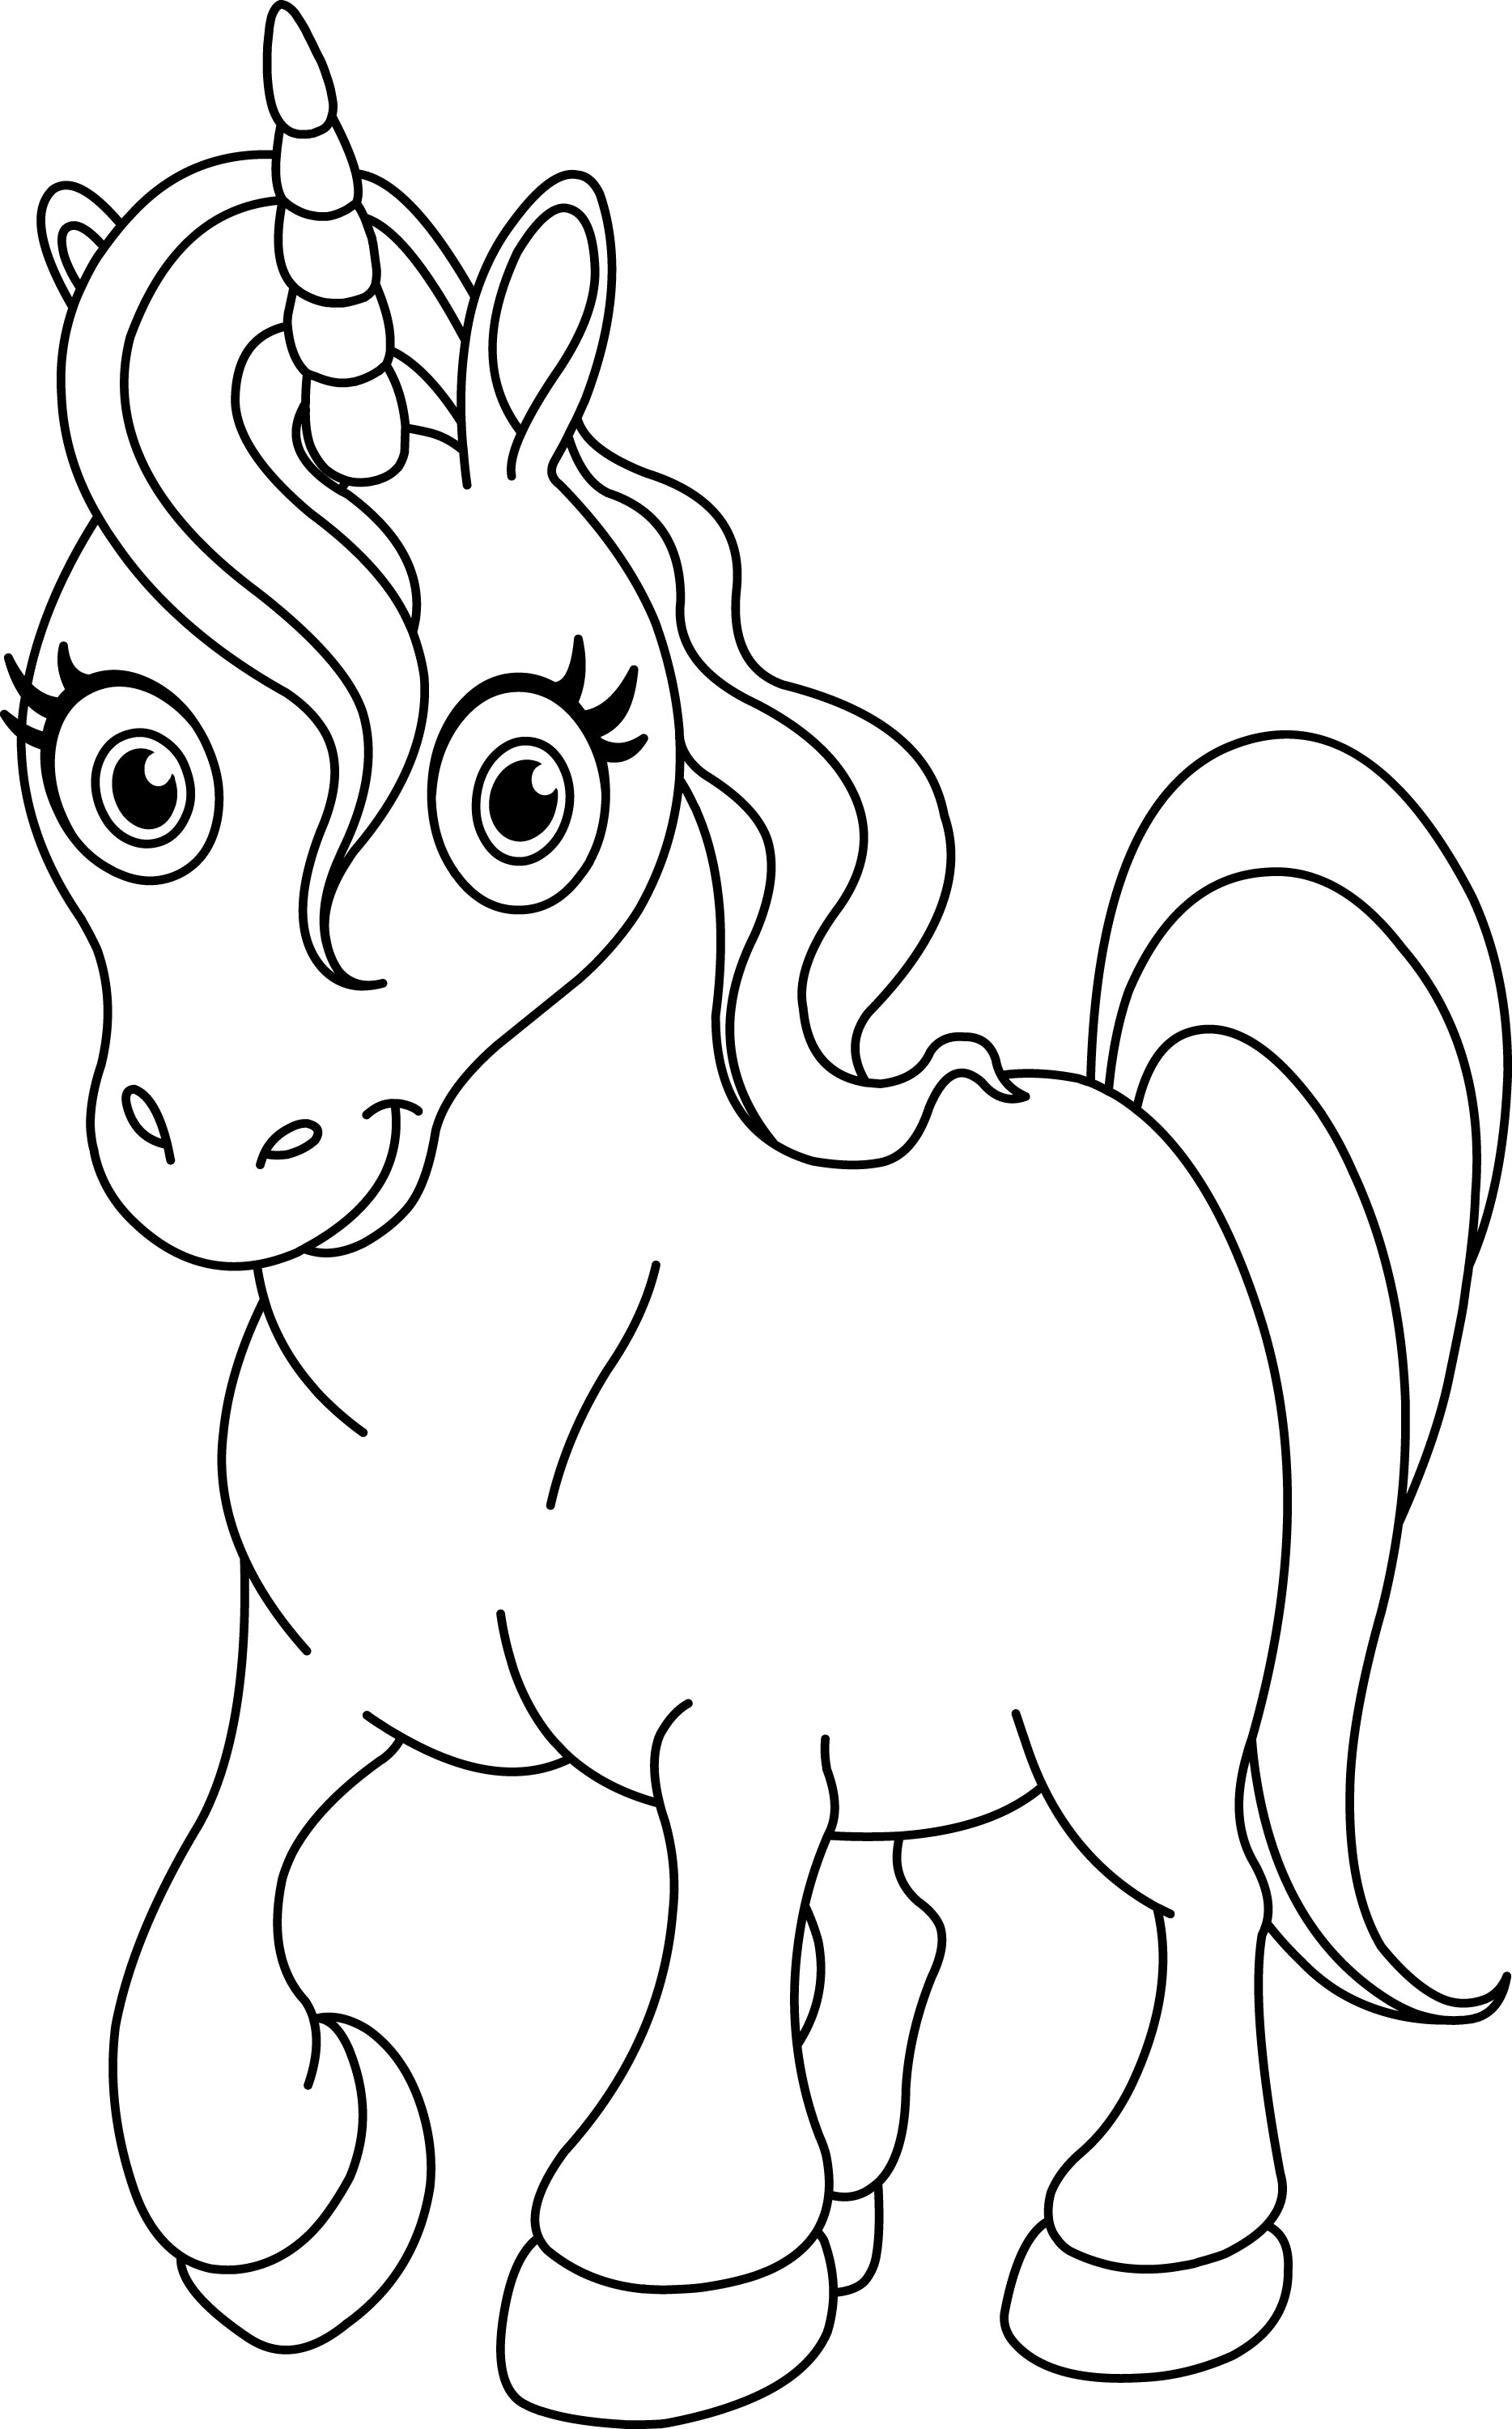 coloring for unicorn unicorn coloring pages for adults best coloring pages for coloring unicorn